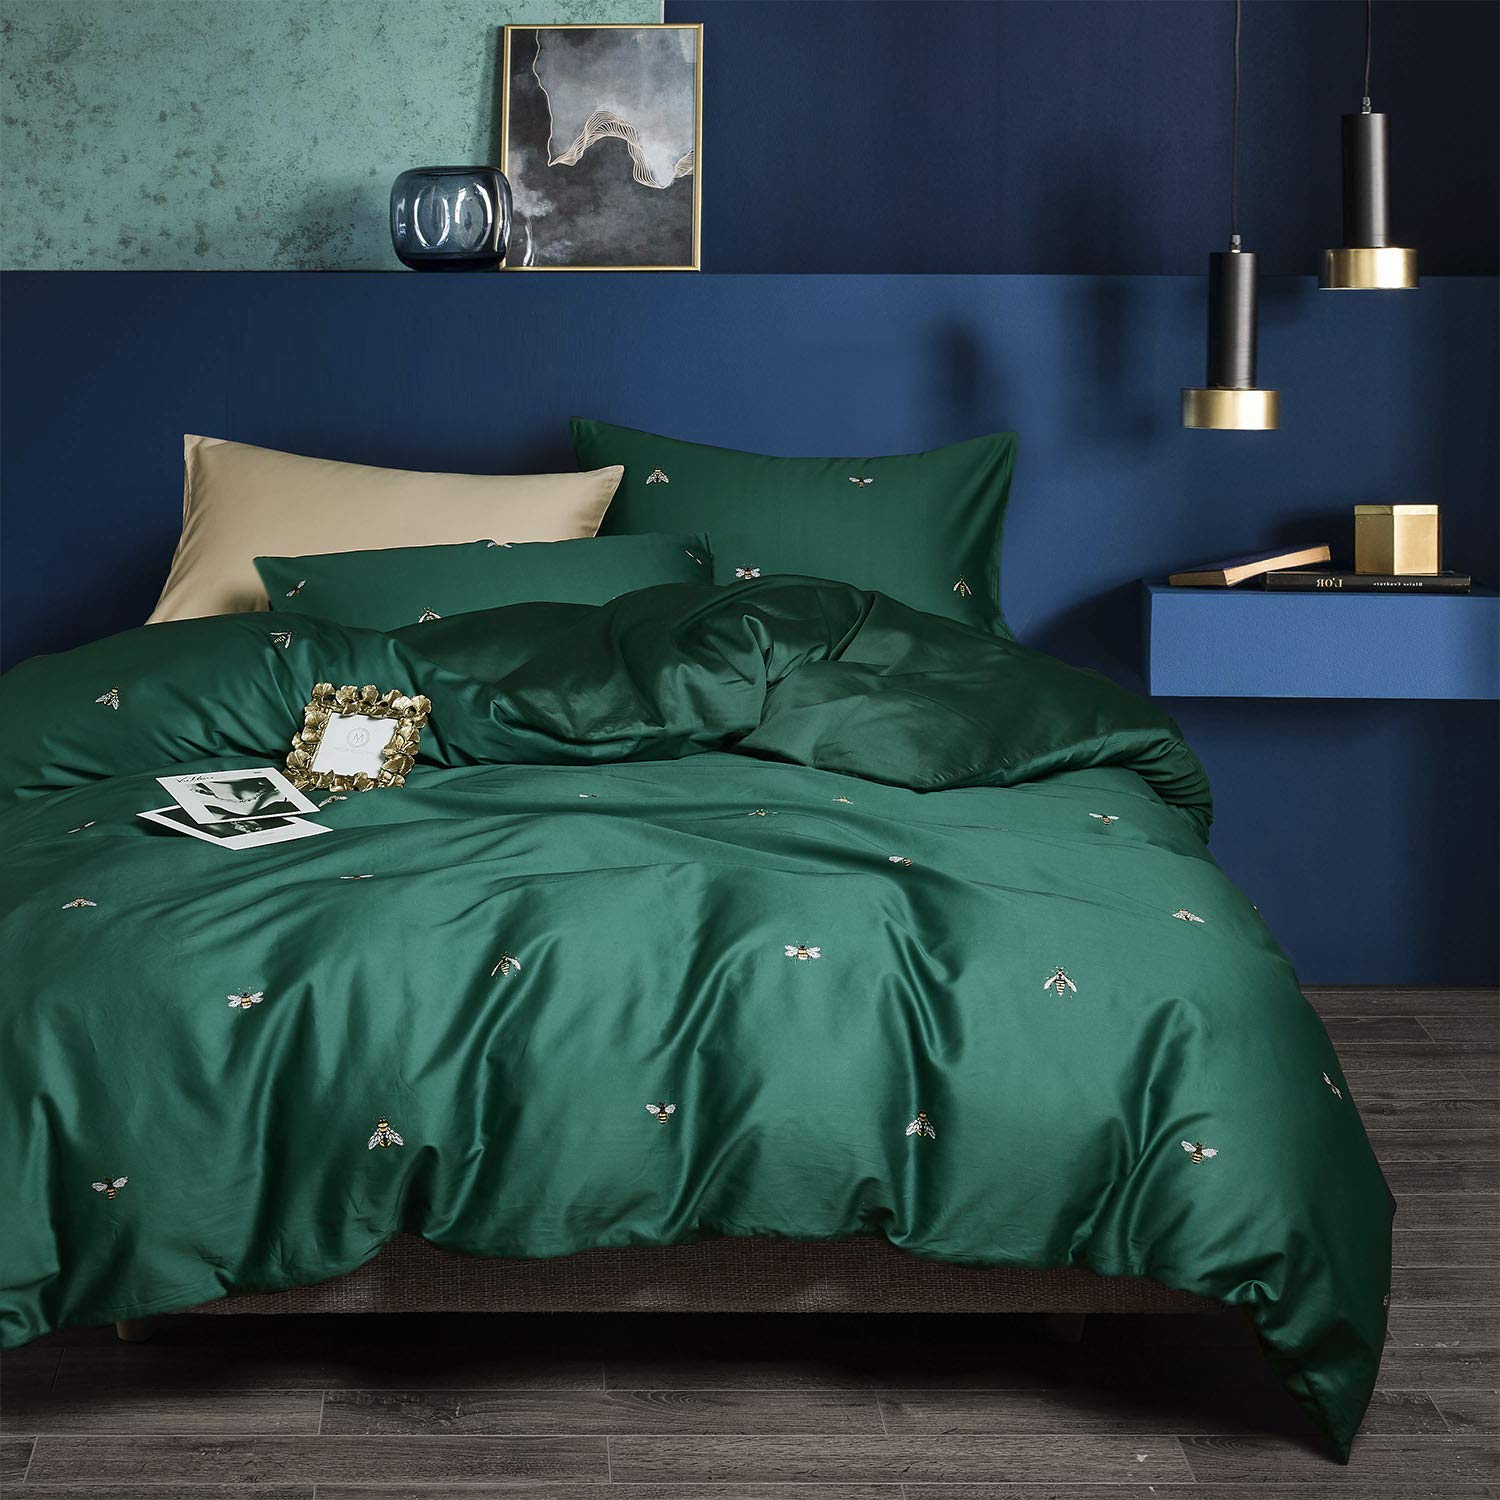 Emerald Green Home Decor Furniture For Every Room